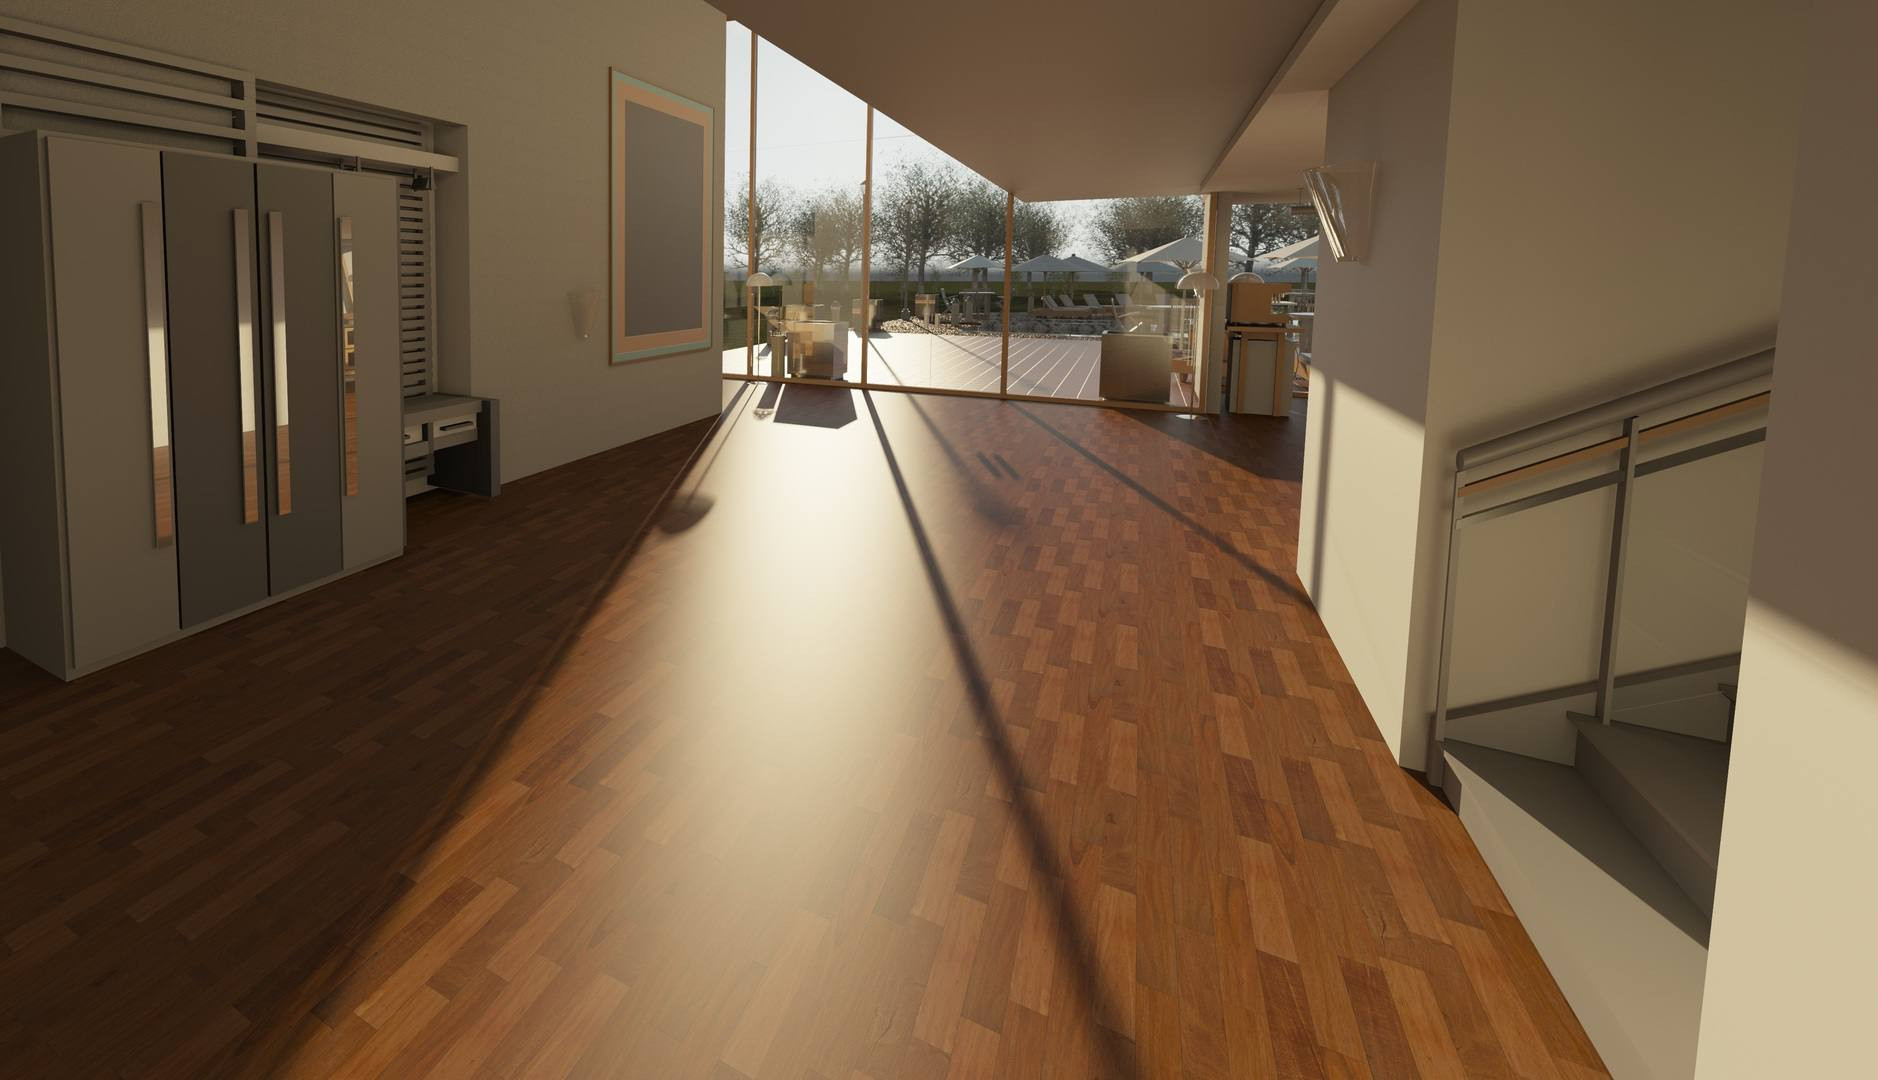 hardwood floor equipment for sale of common flooring types currently used in renovation and building with regard to architecture wood house floor interior window 917178 pxhere com 5ba27a2cc9e77c00503b27b9